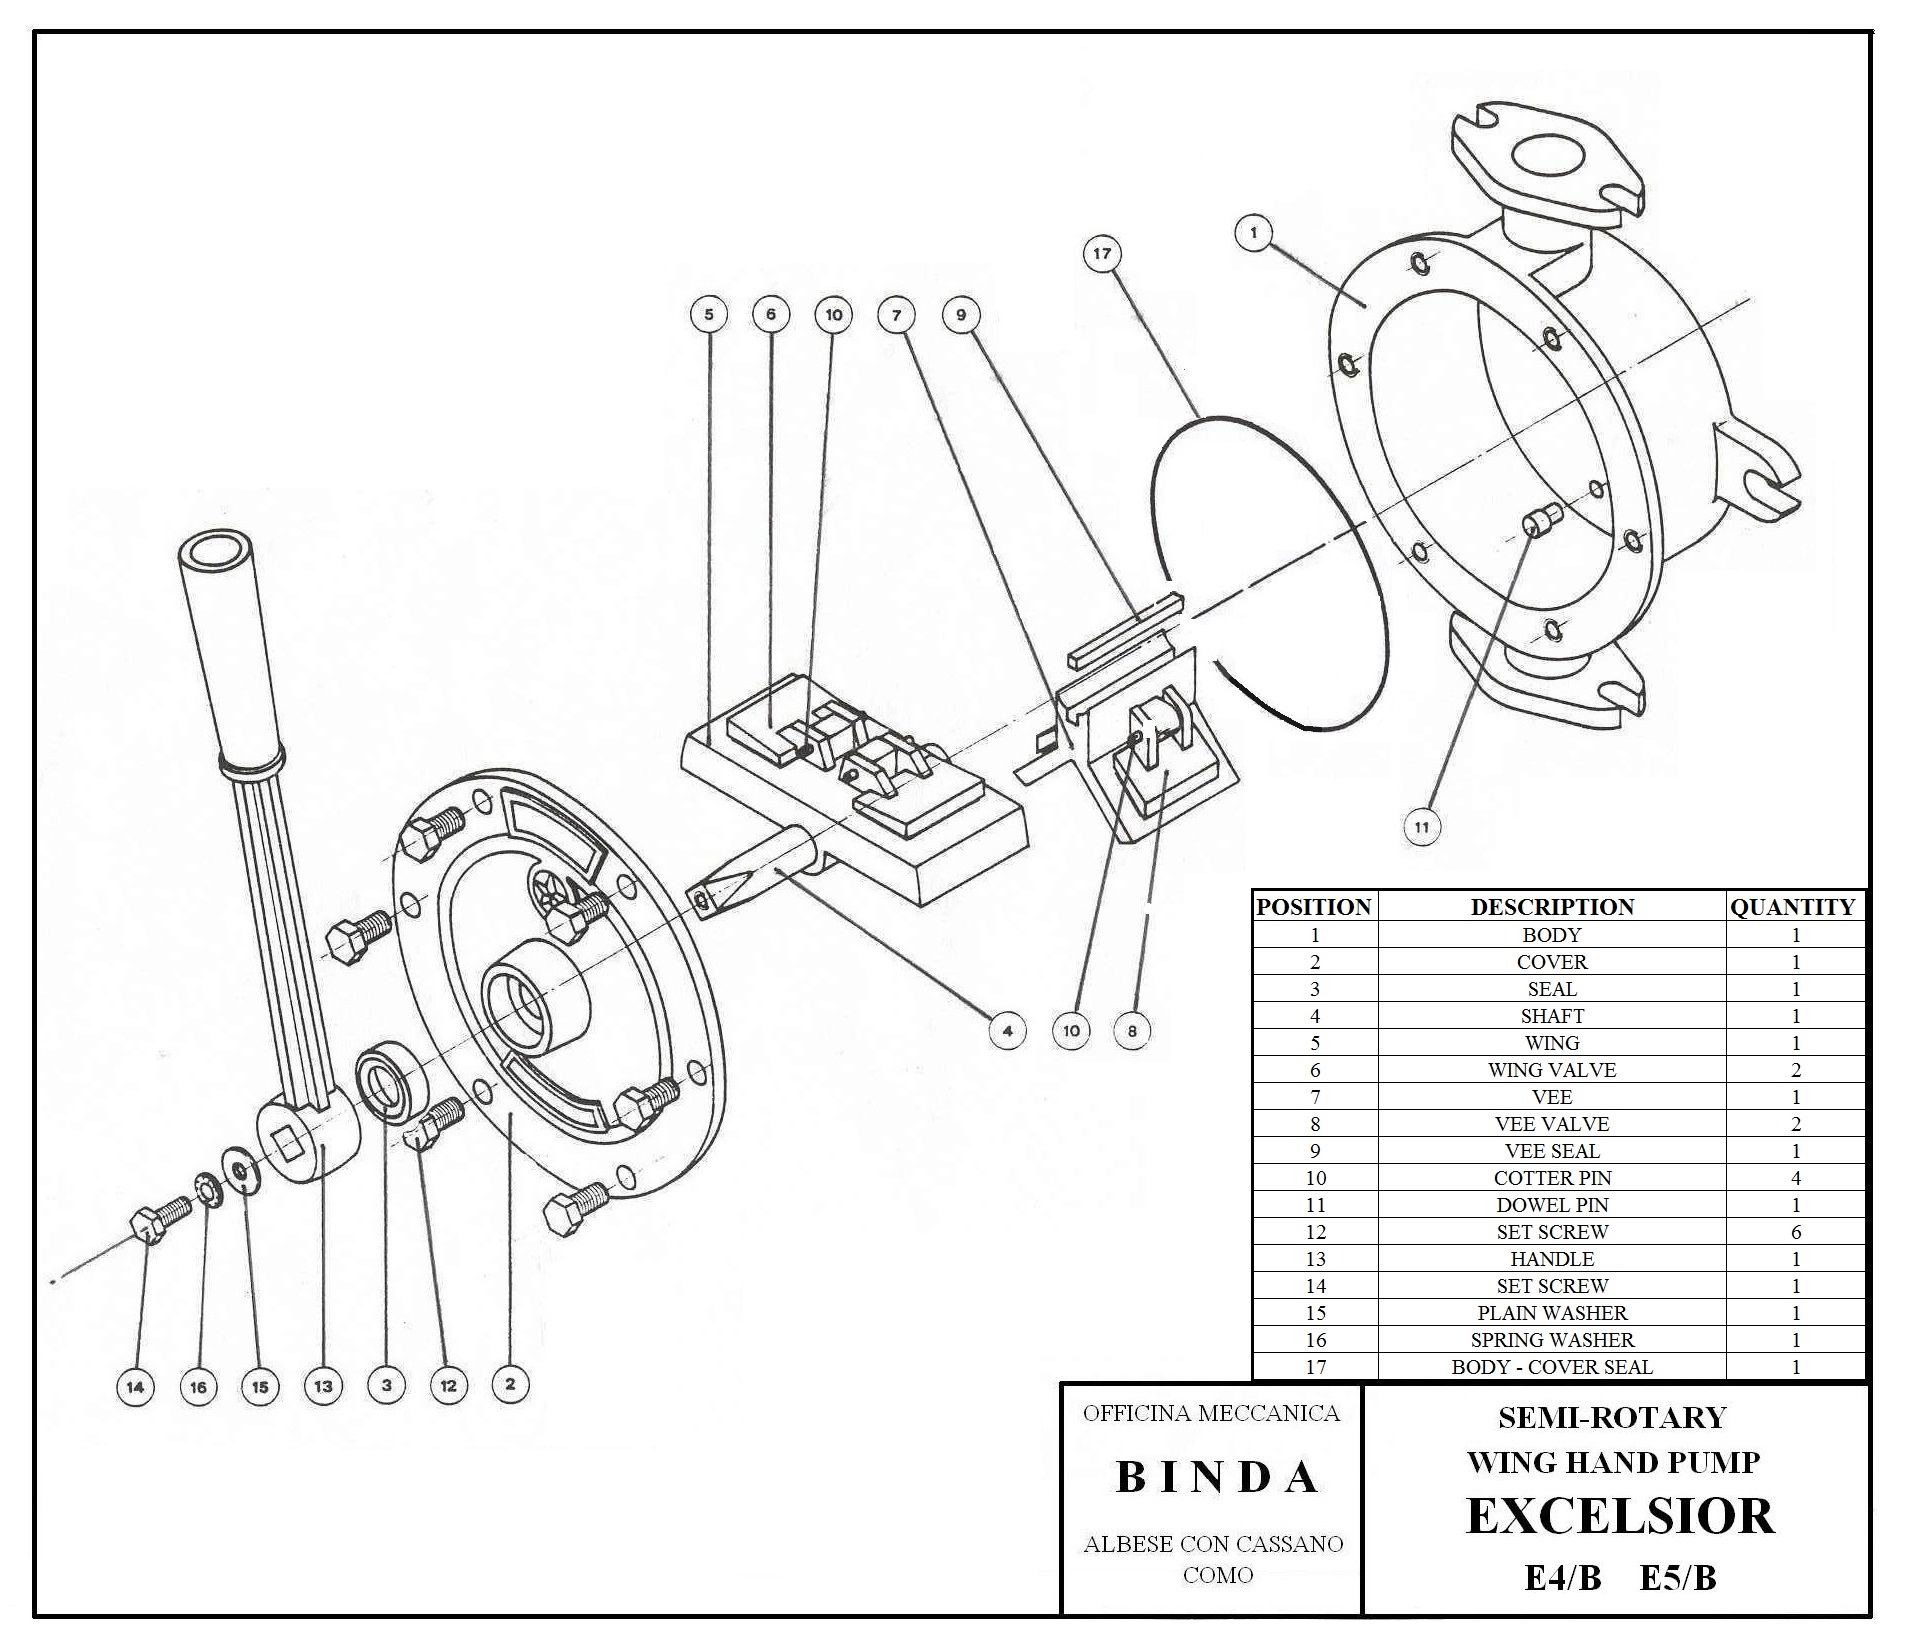 double outlet wiring diagram 50cc atv binda excelsior g semi-rotary hand pump & manual | castle pumps